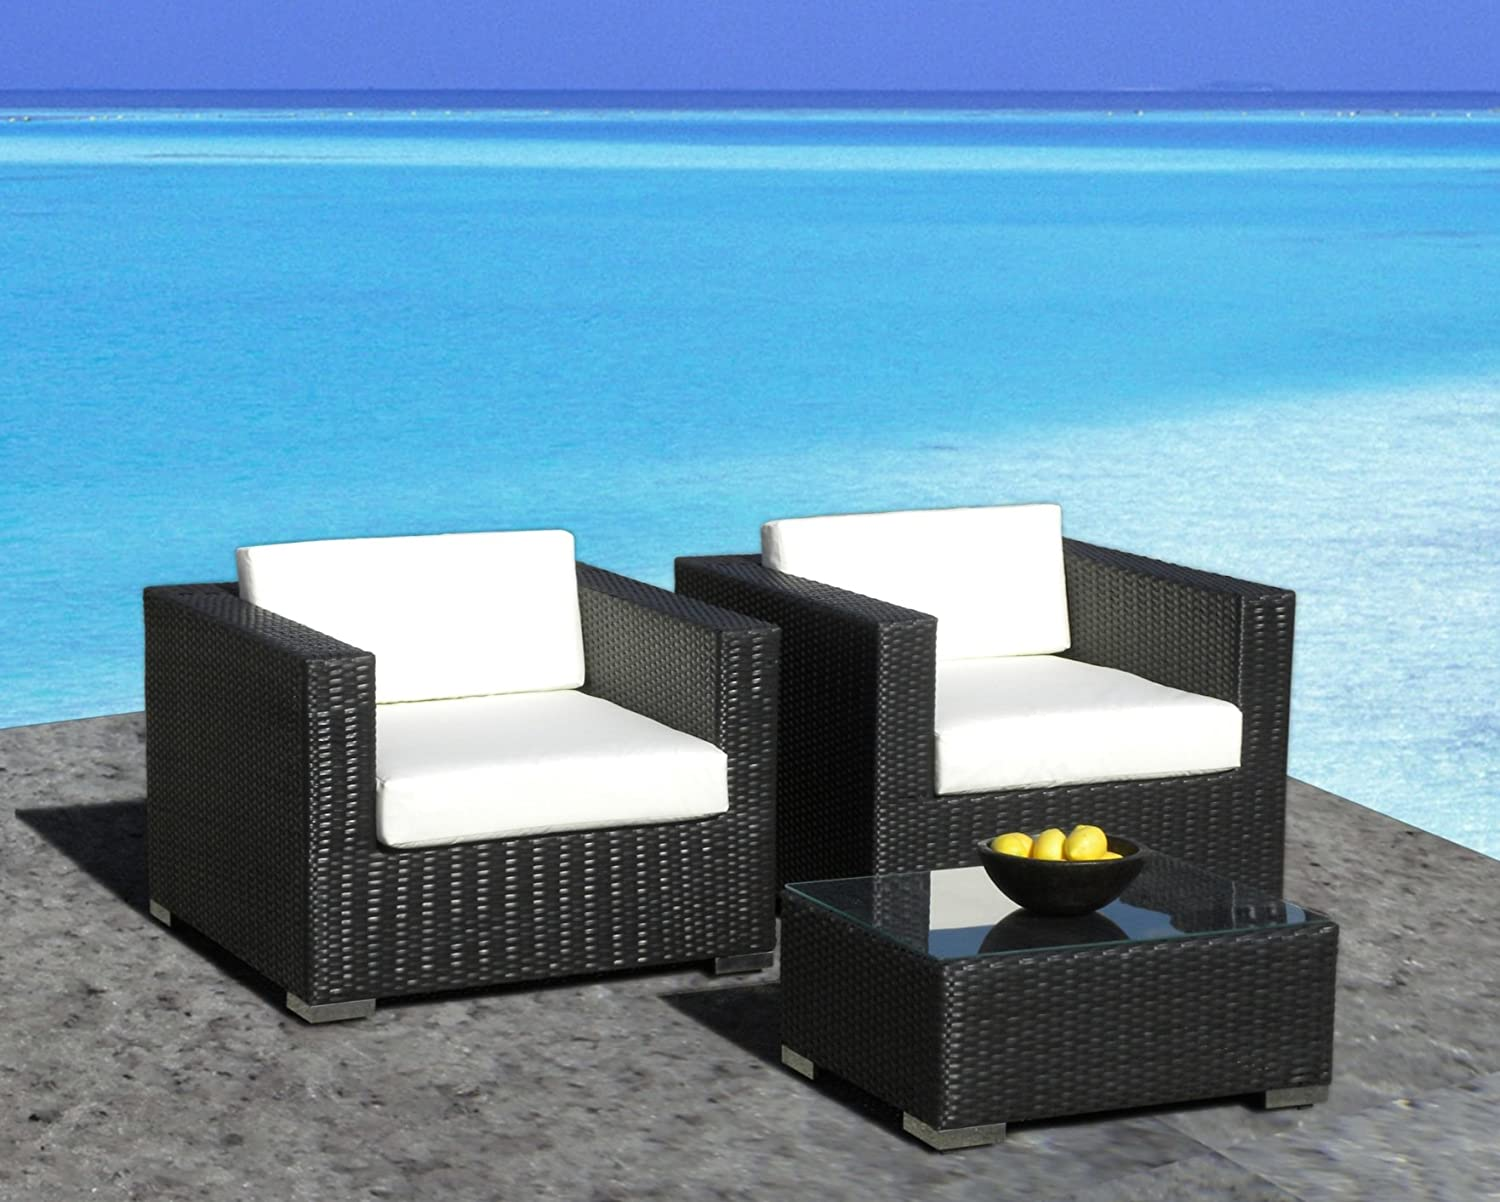 Amazon.com : Outdoor Patio Furniture All-Weather Wicker 3 Pc Arm ...